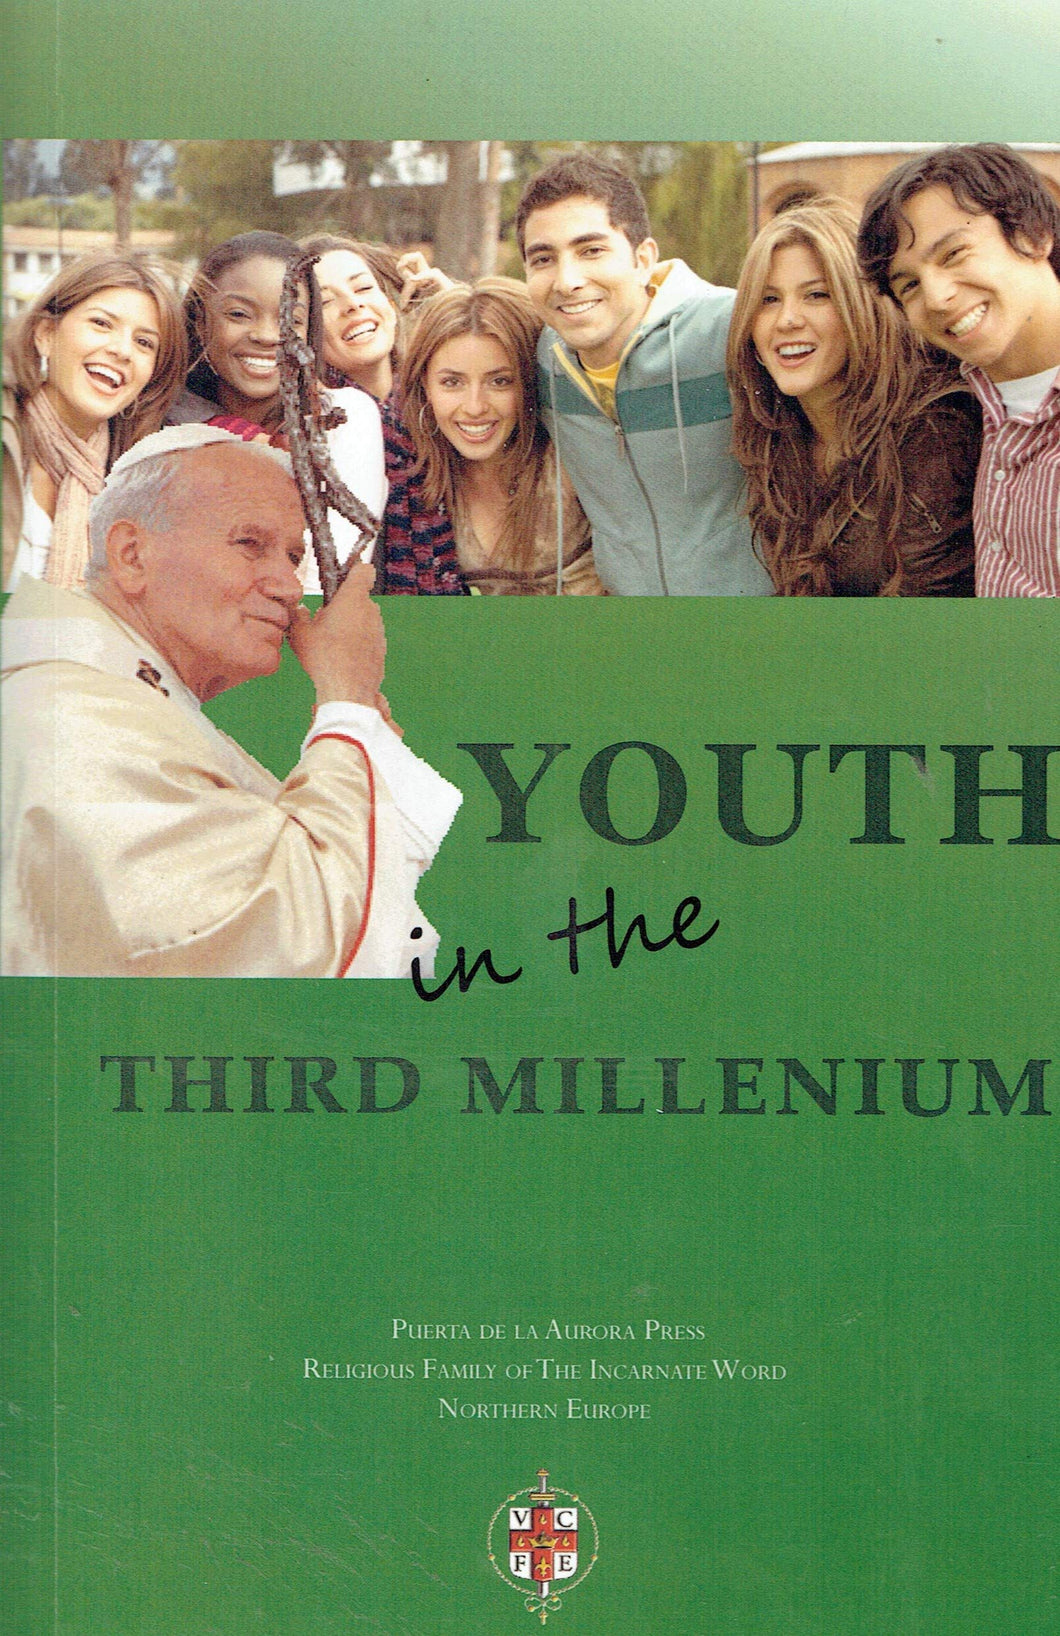 Youth in the Third Millennium (Millenium)